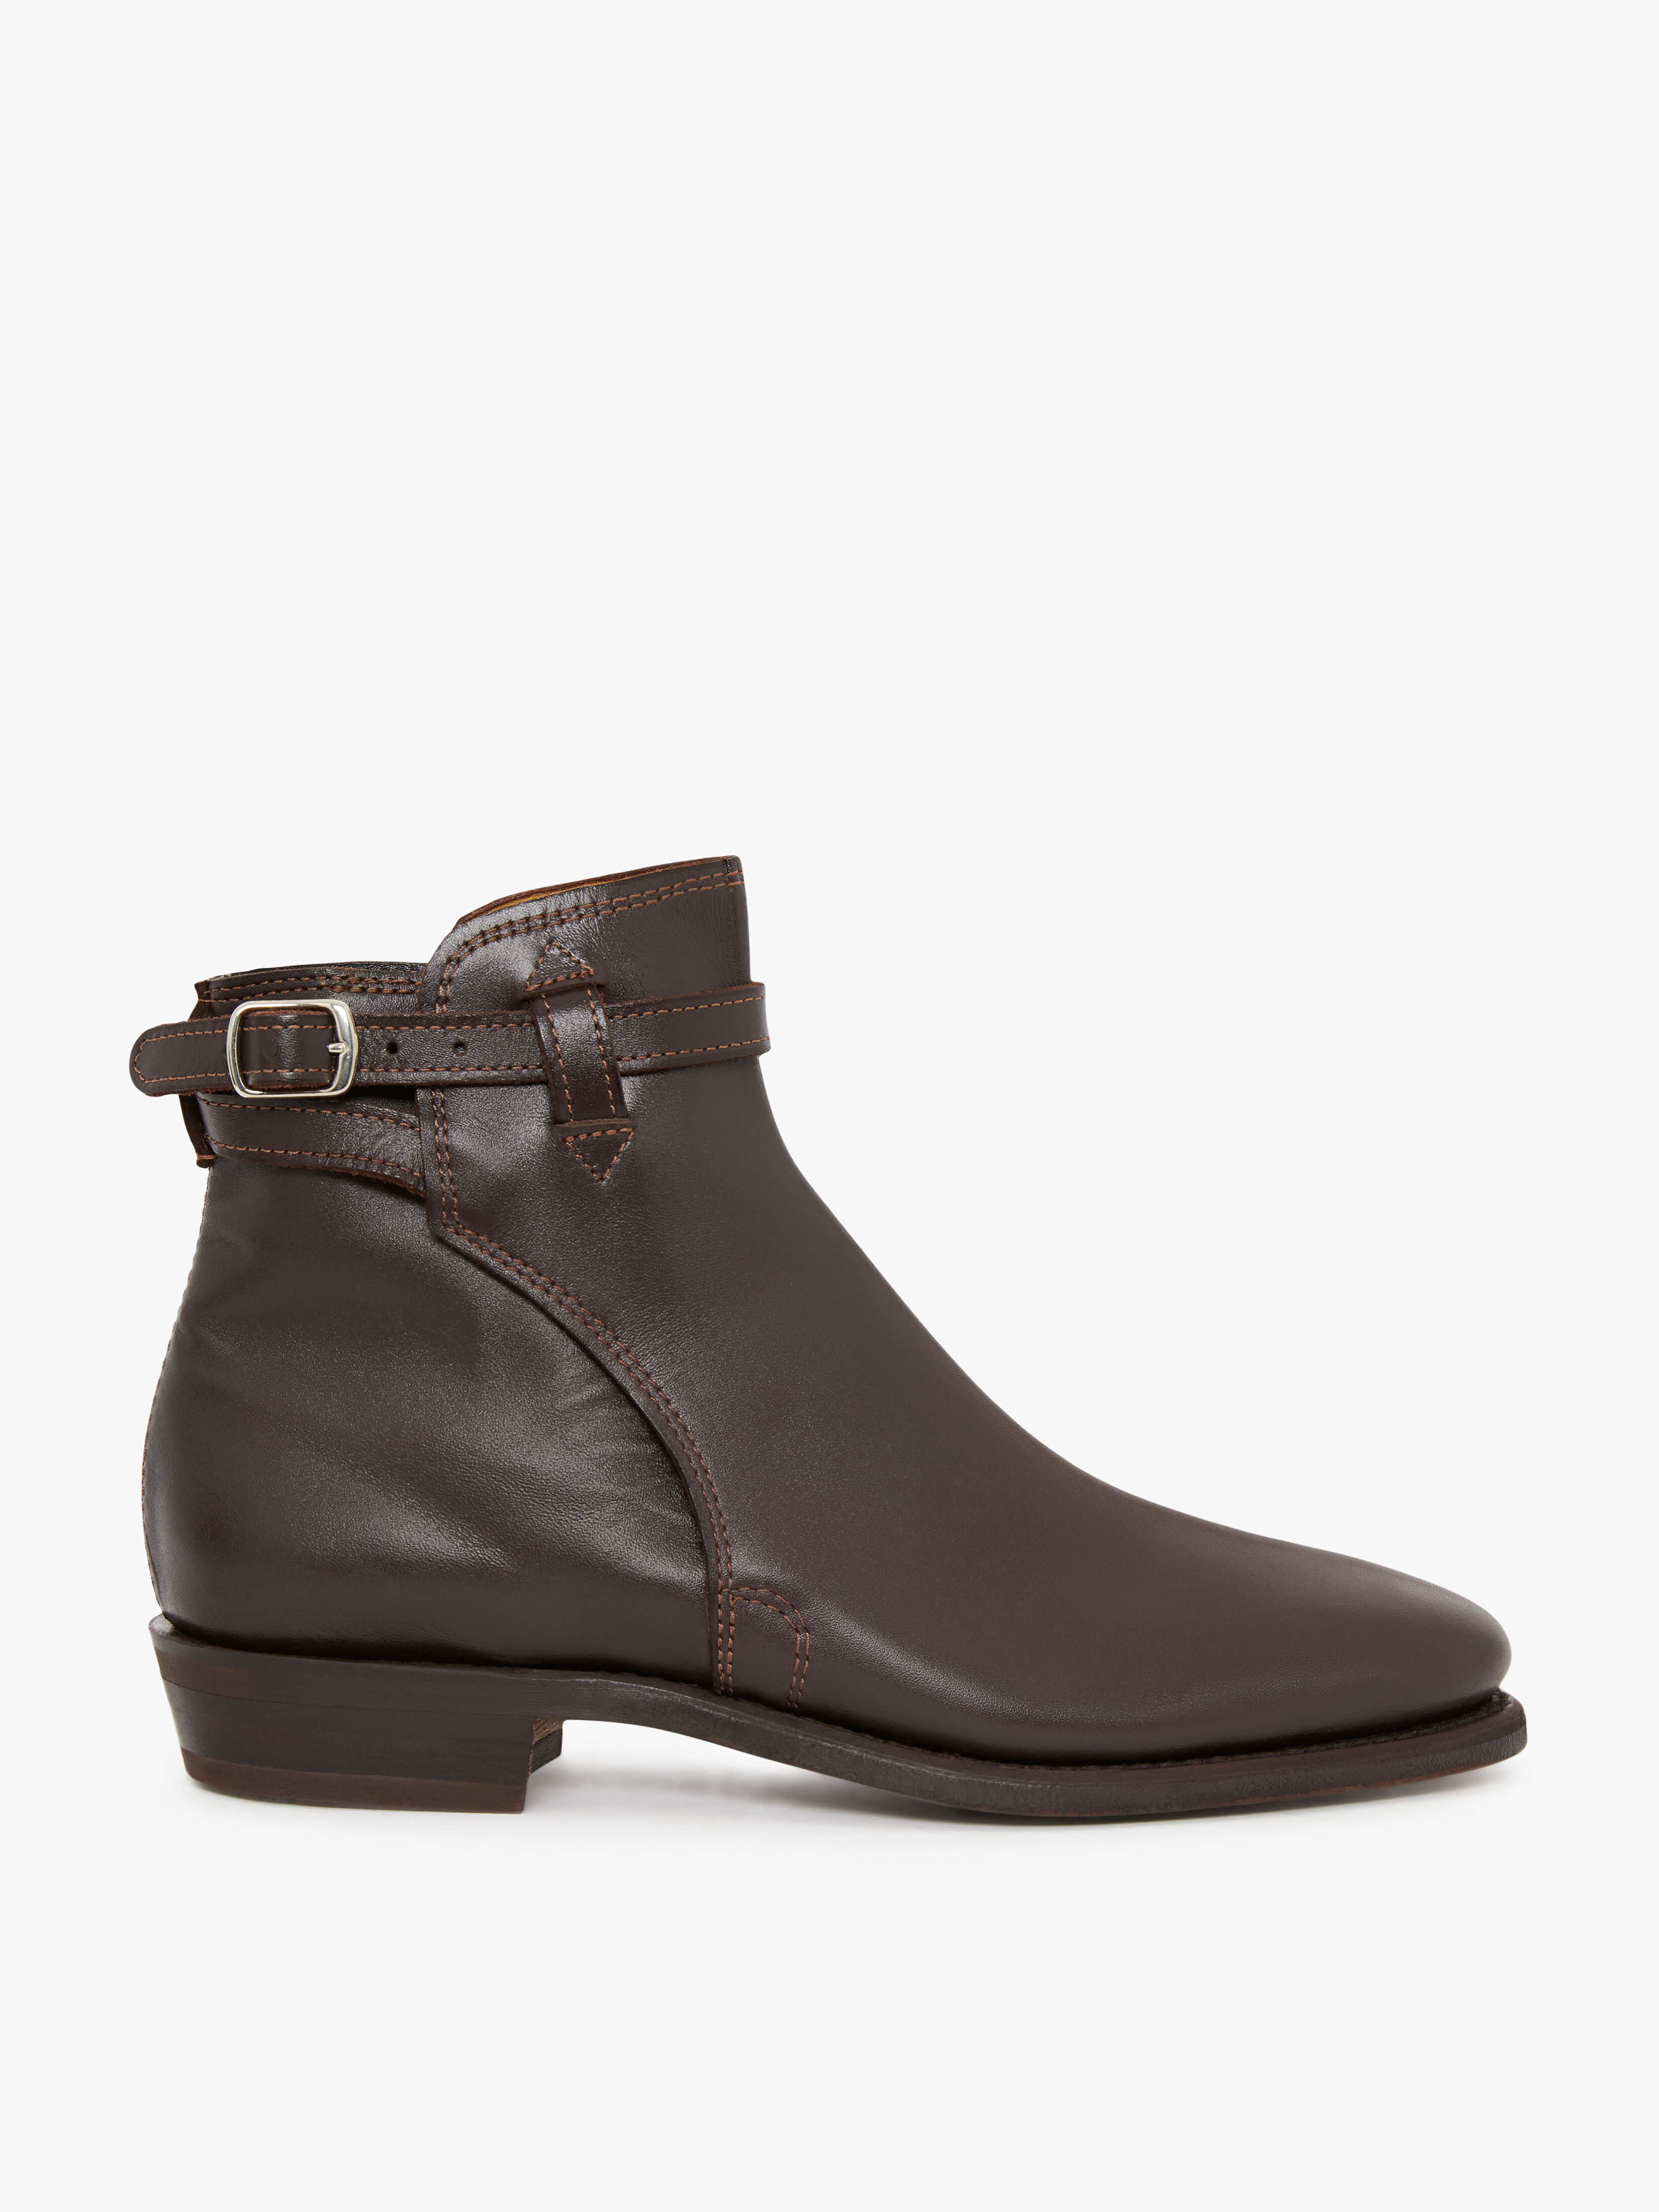 Eden Buckle Boot Women's Boots at R.M.Williams®